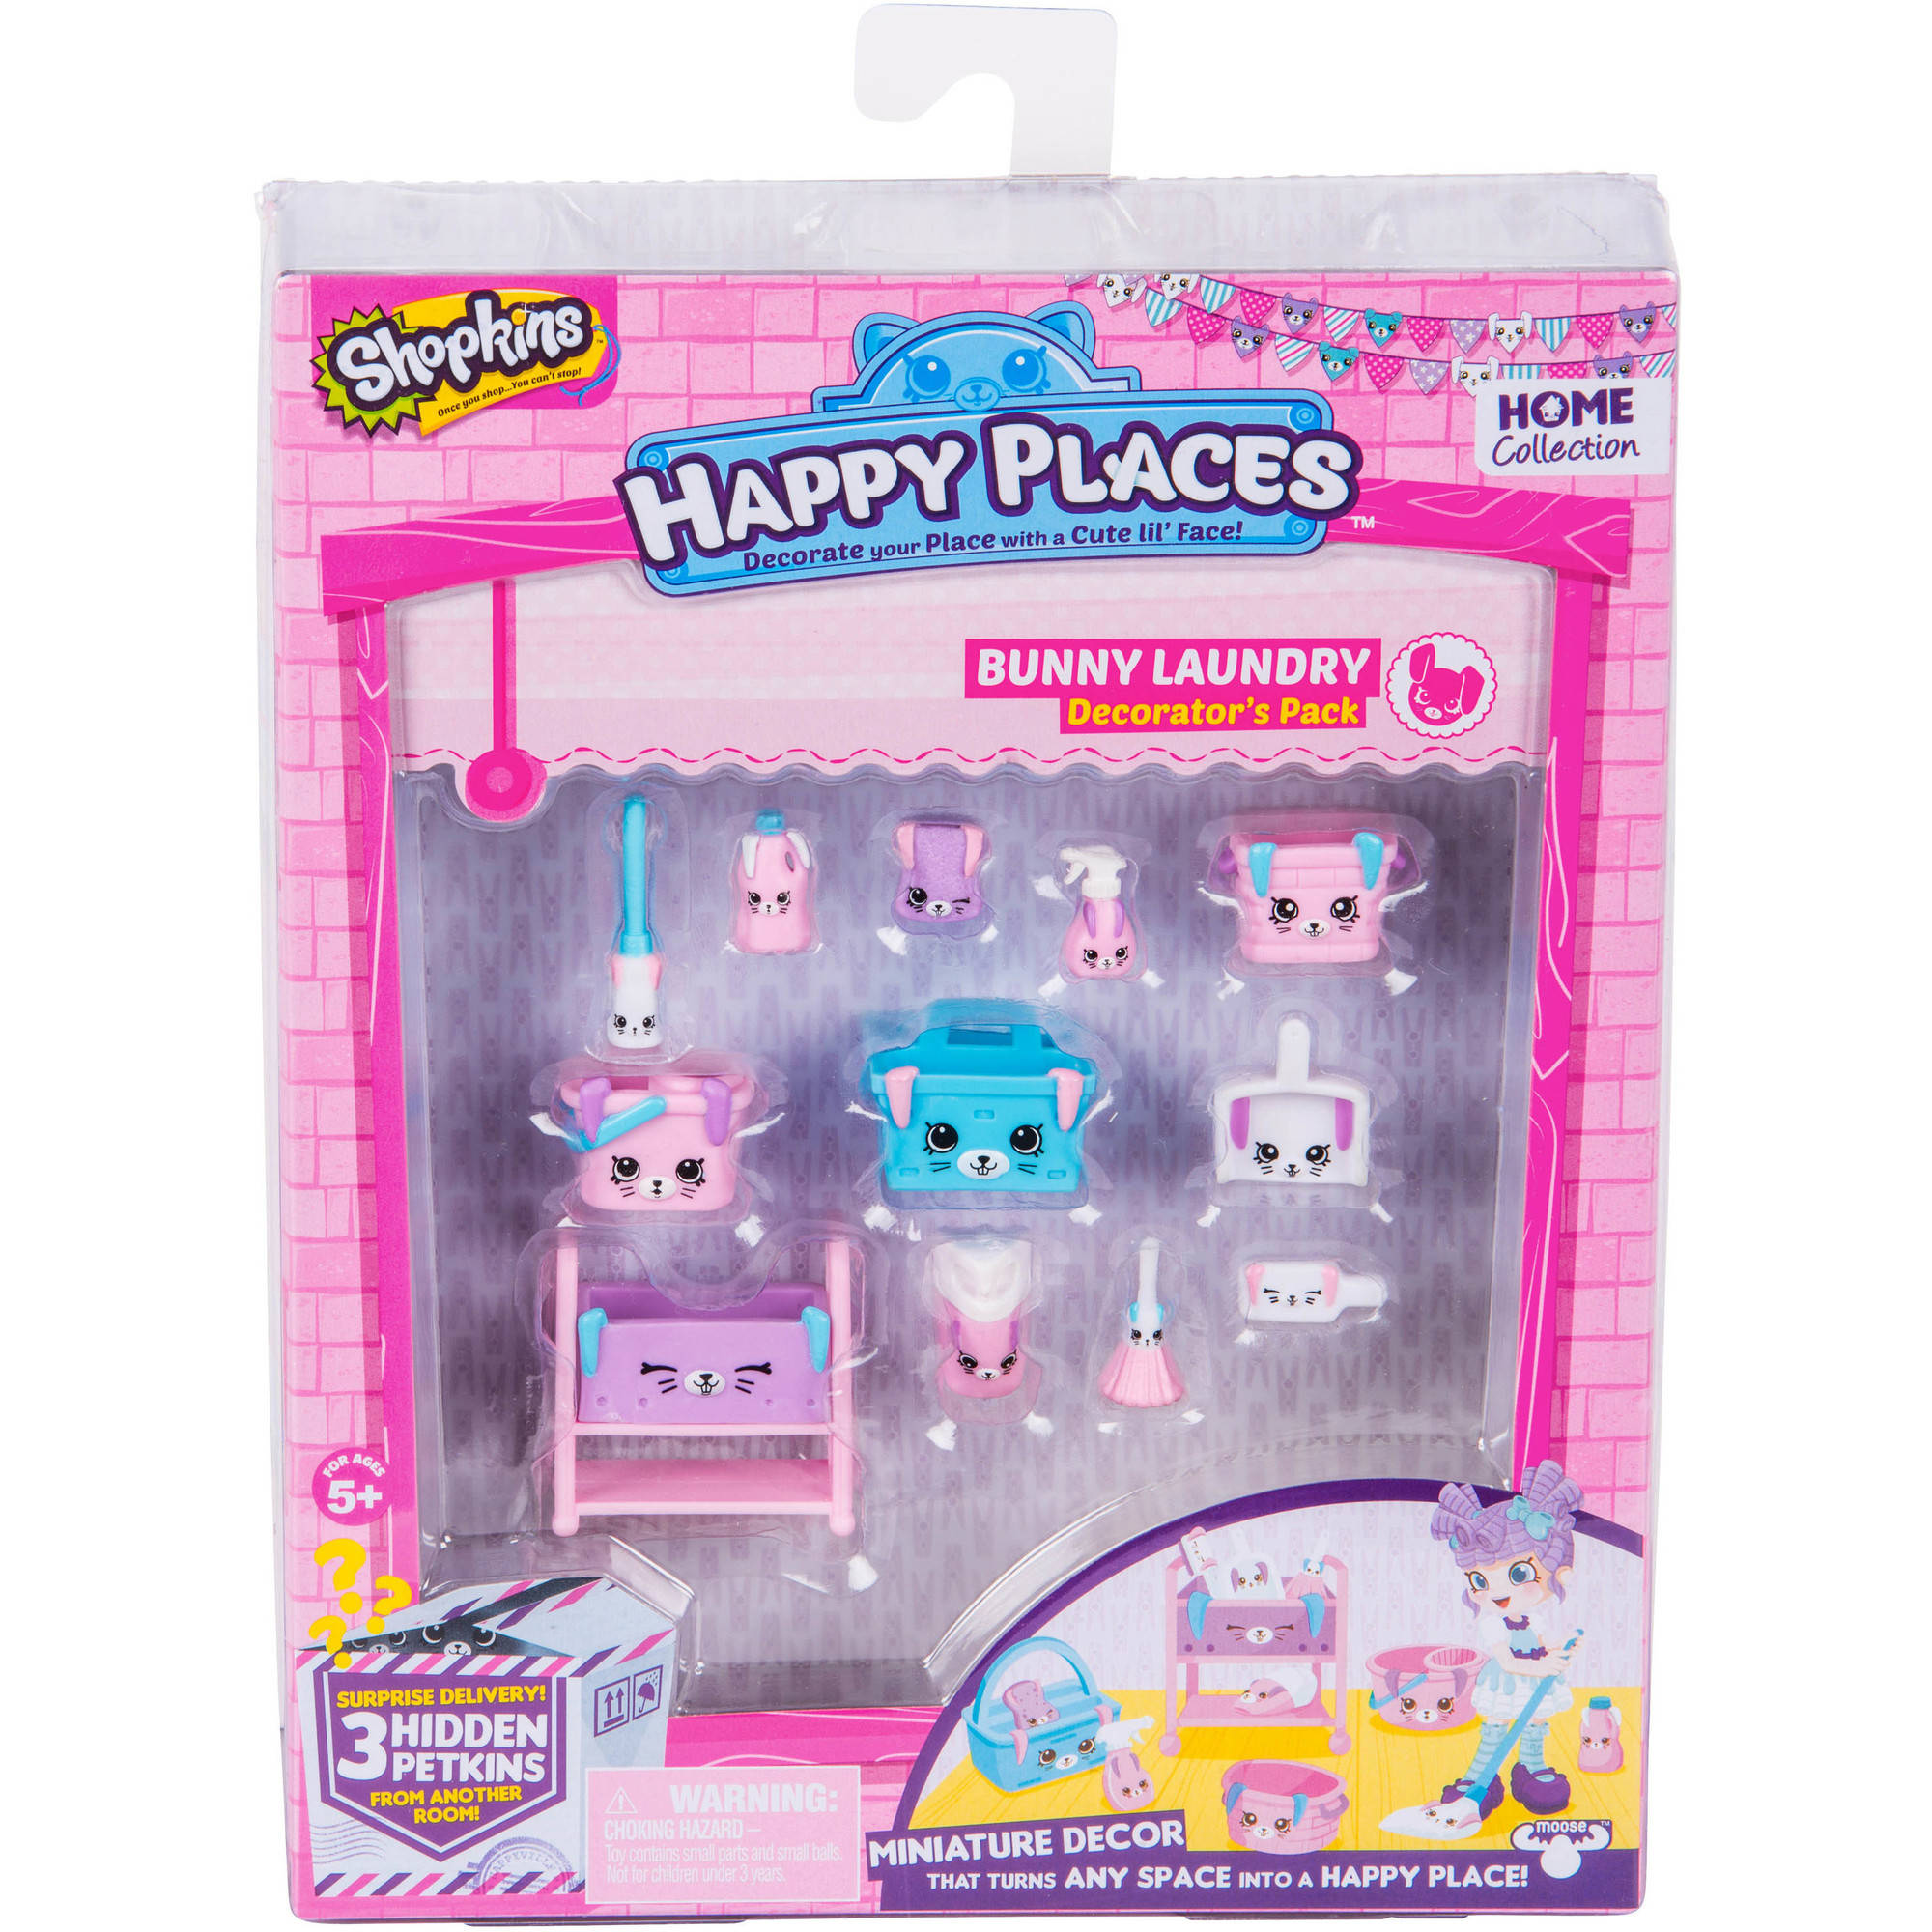 Happy Places Shopkins S2 Decorator Pack, Bunny Laundry